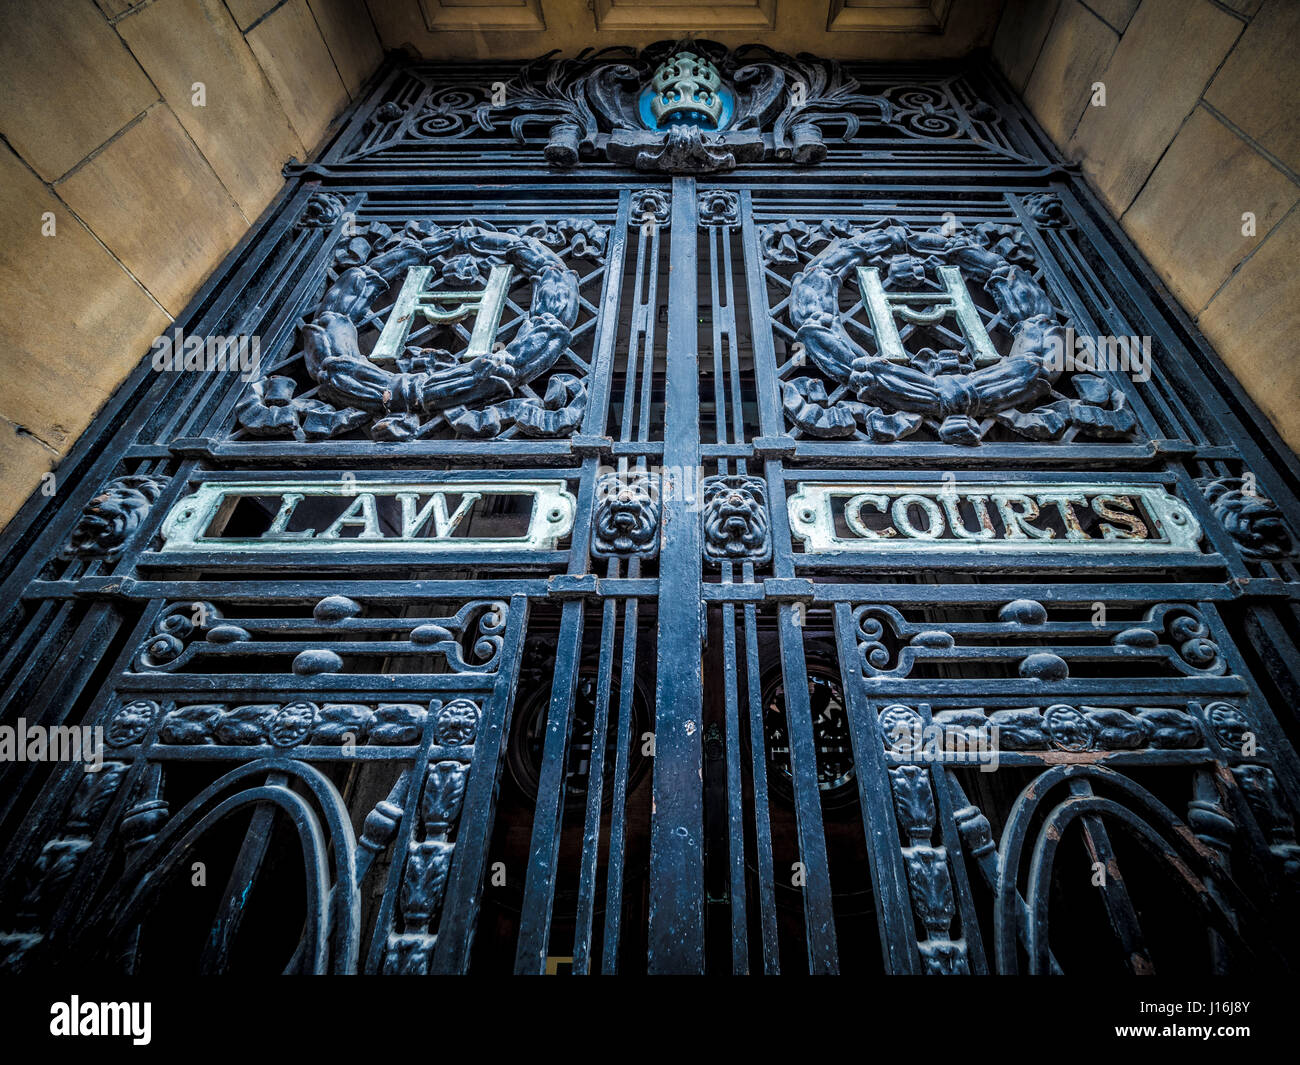 Law Courts sign on gates, Hull, UK. - Stock Image